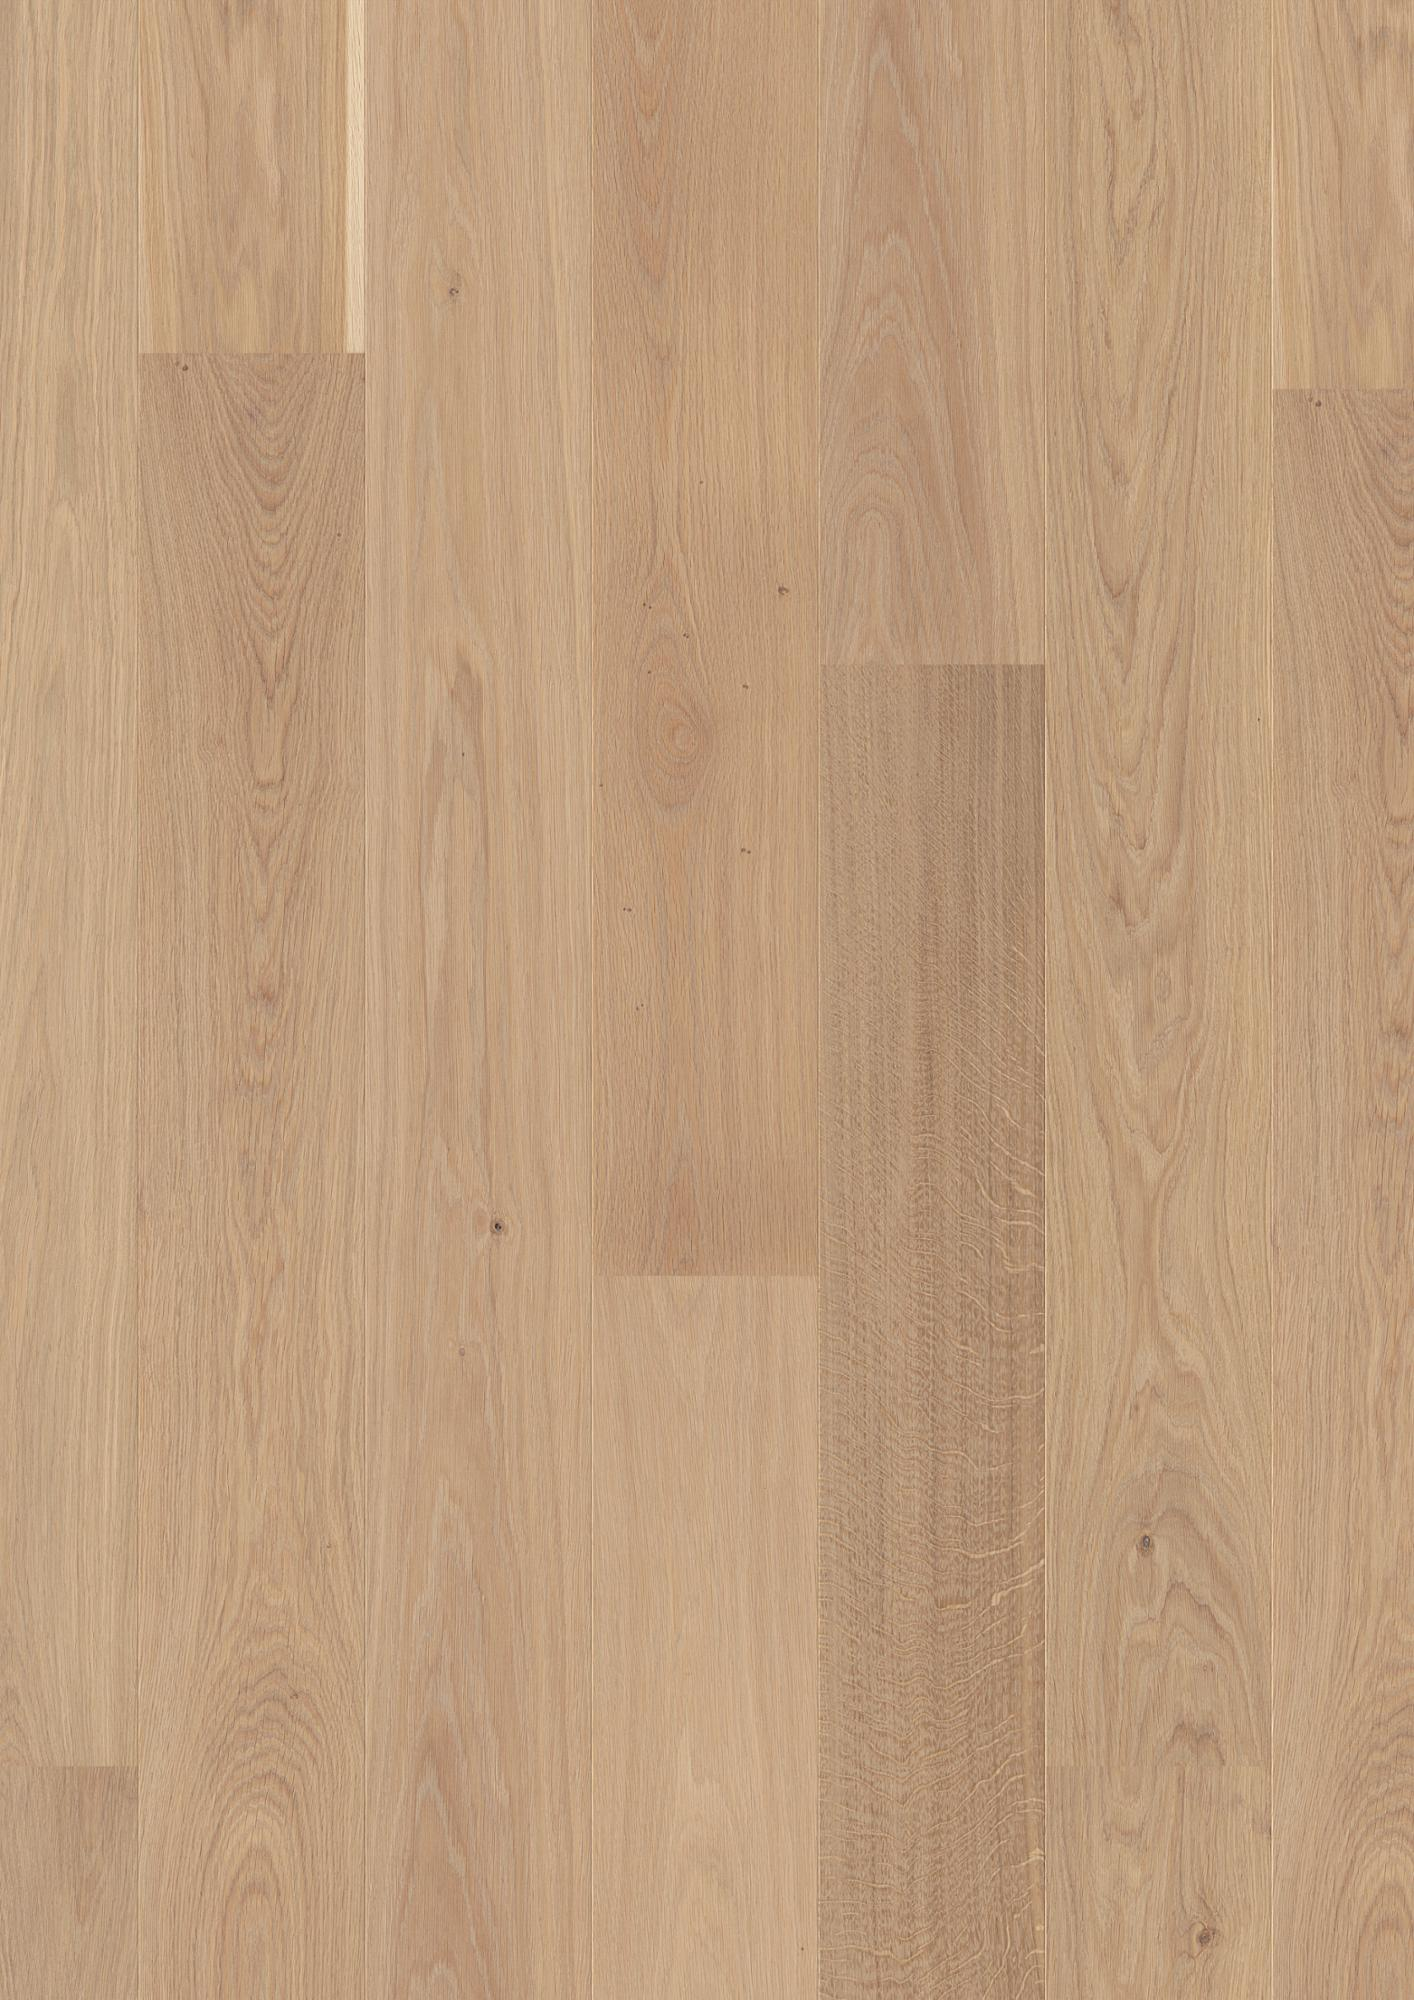 Oak Andante, Live Pure lacquer, Brushed, Beveled 2V, Plank 181, 14x181x2200mm